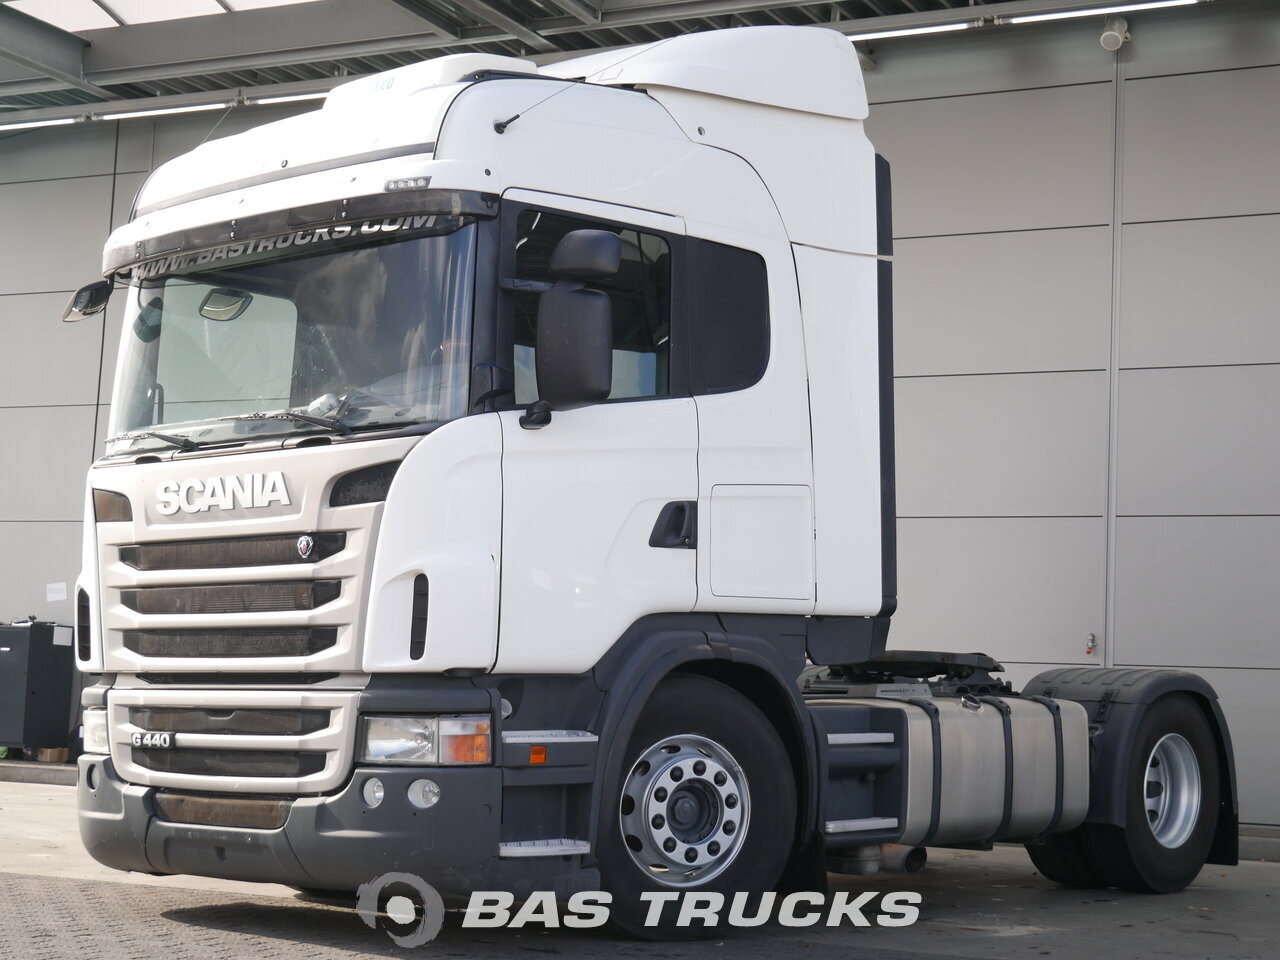 For sale at BAS Trucks: Scania G440 4X2 01/2011